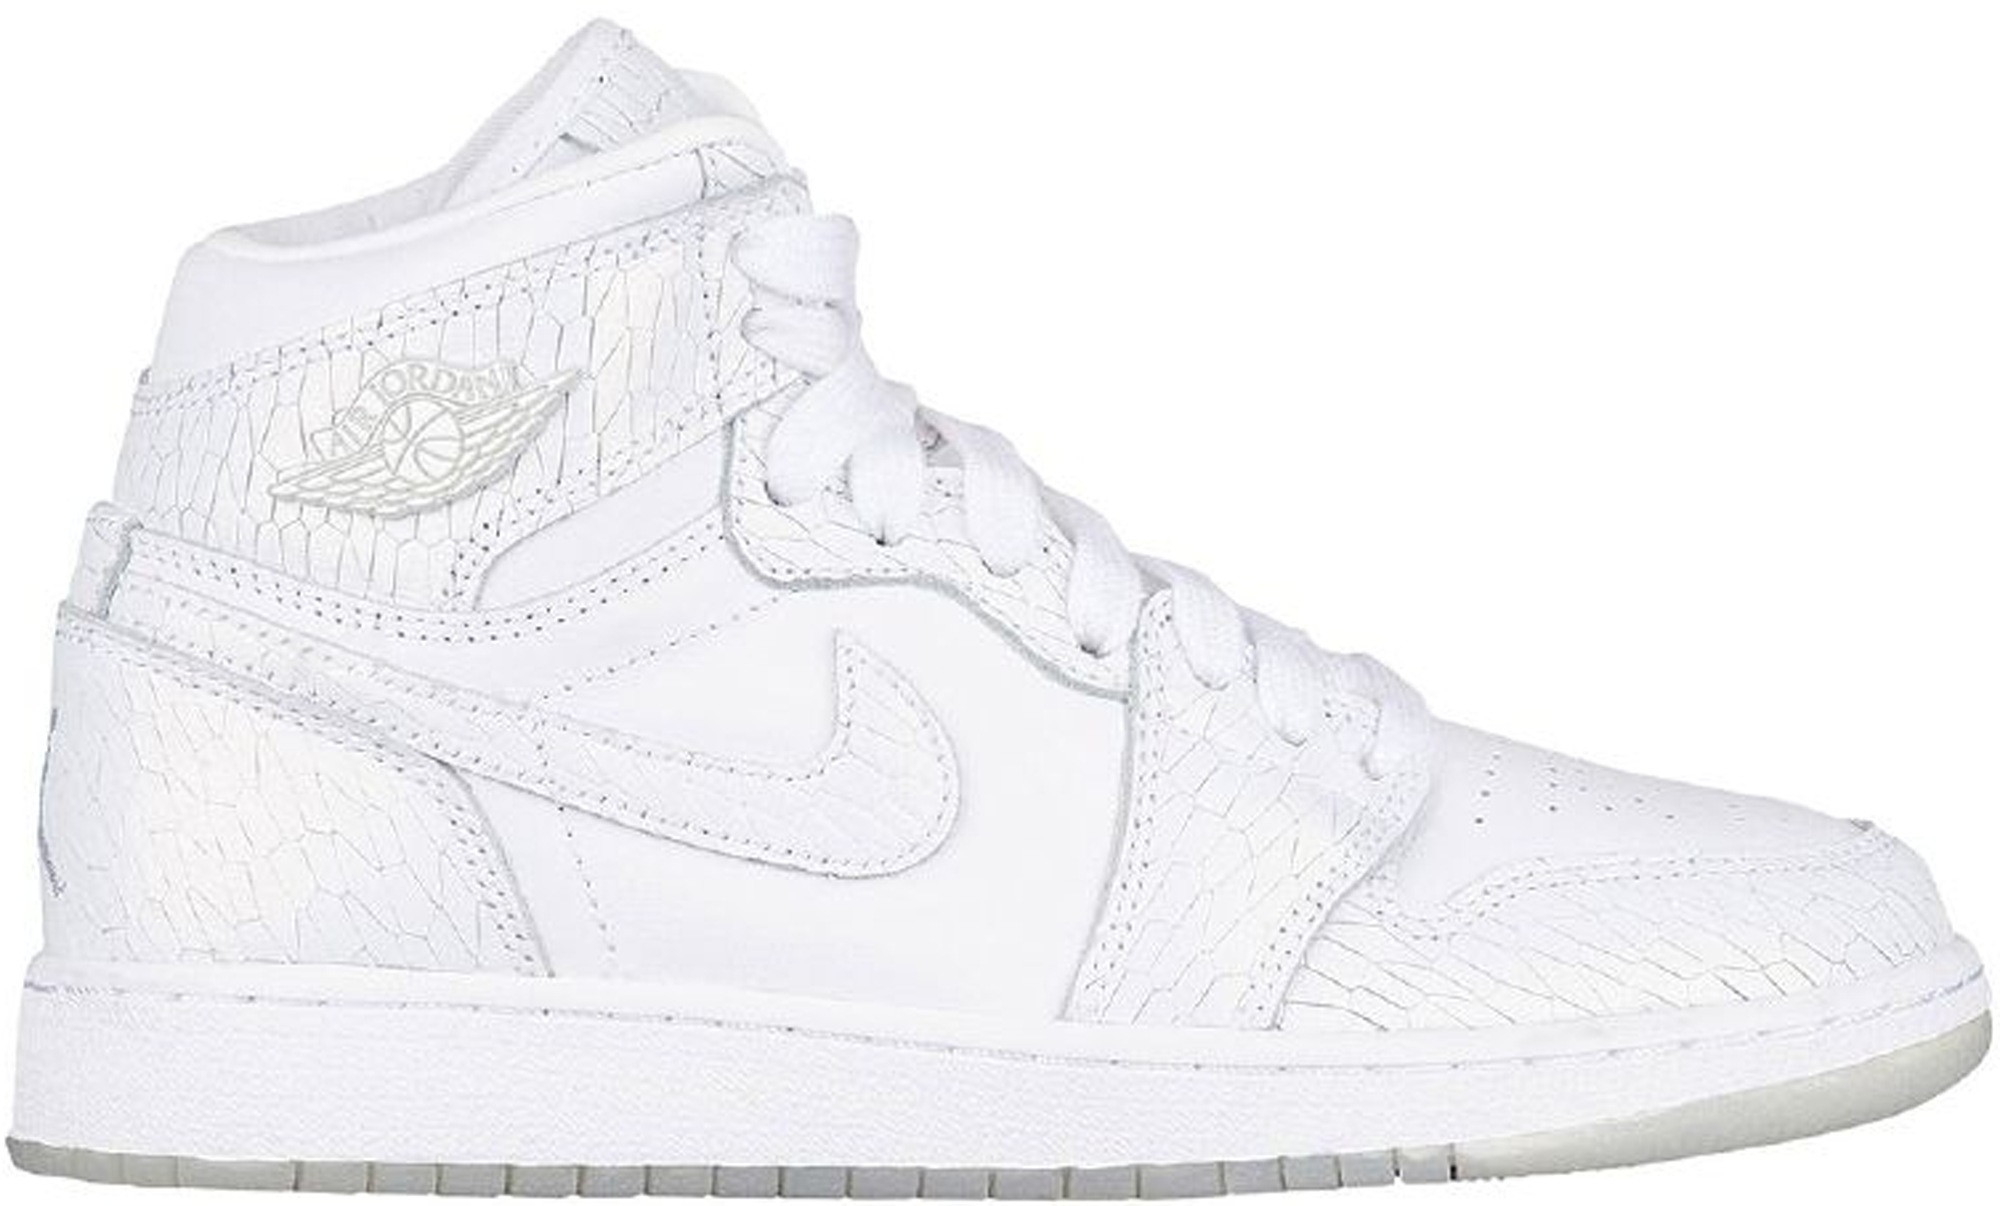 5f0a440c81a5 Girls Air Jordan 1 Retro High Premium HC GG White Pure Platinum GS Frost  White Heiress